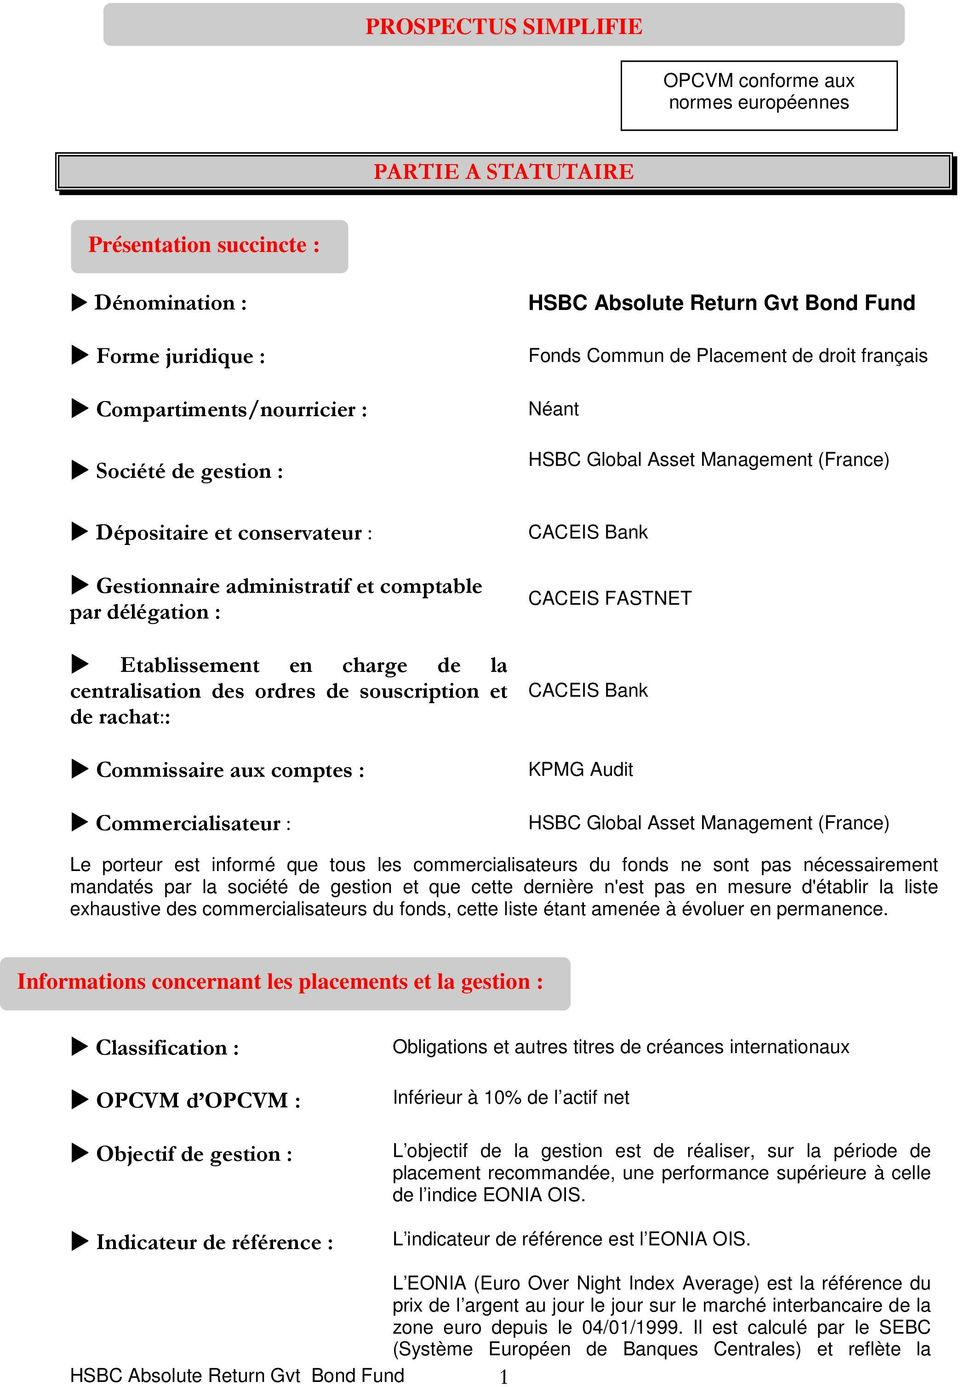 Commercialisateur : HSBC Absolute Return Gvt Bond Fund Fonds Commun de Placement de droit français HSBC Global Asset Management (France) CACEIS Bank CACEIS FASTNET CACEIS Bank KPMG Audit HSBC Global